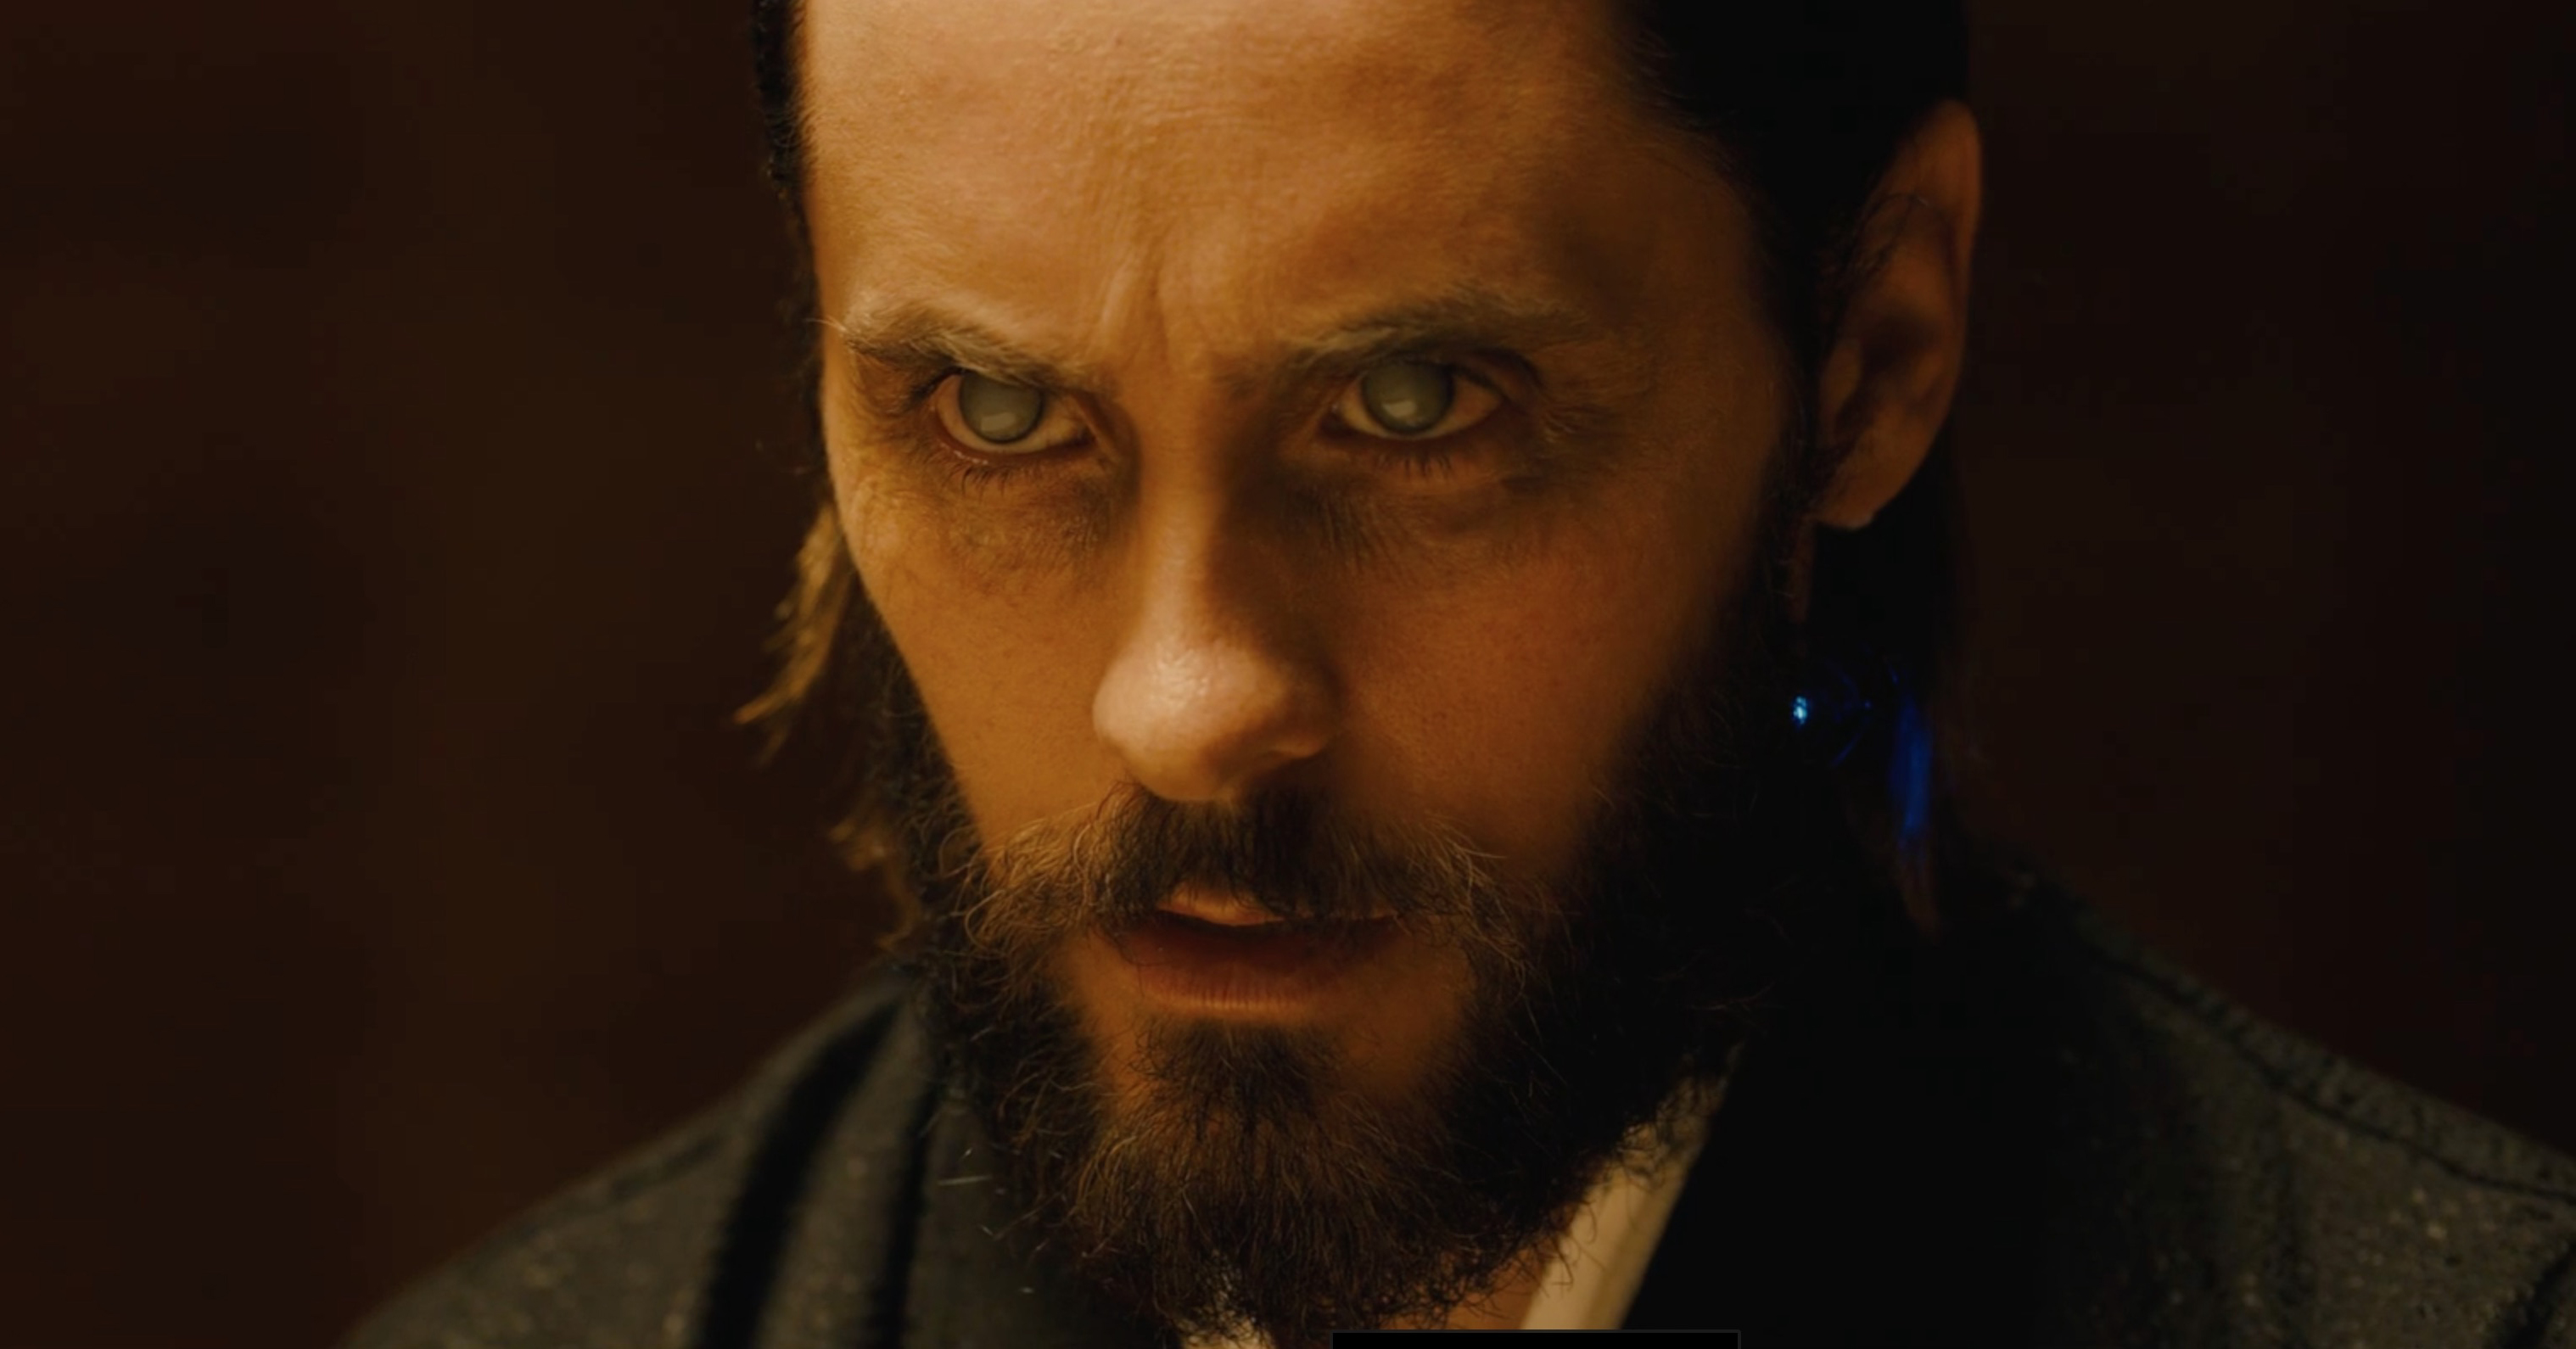 Jared Leto truly inhibits the megalomaniacal Niander Wallace in Blade Runner 2049